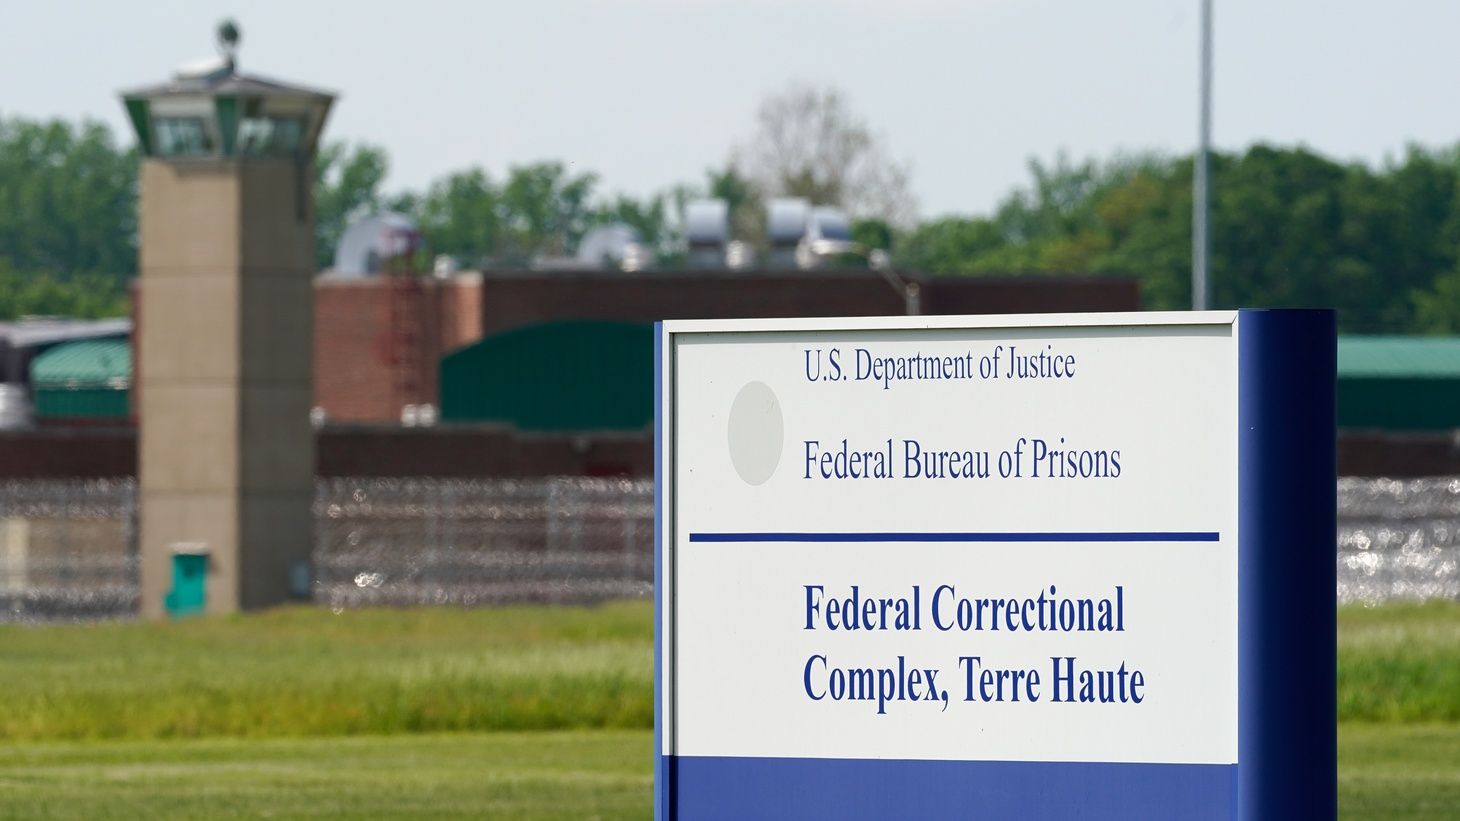 """The Federal Corrections Complex, from where John Walker Lindh, known as the """"American Taliban"""" will leave on May 23, is seen in Terre Haute, Indiana, U.S. May 22, 2019."""